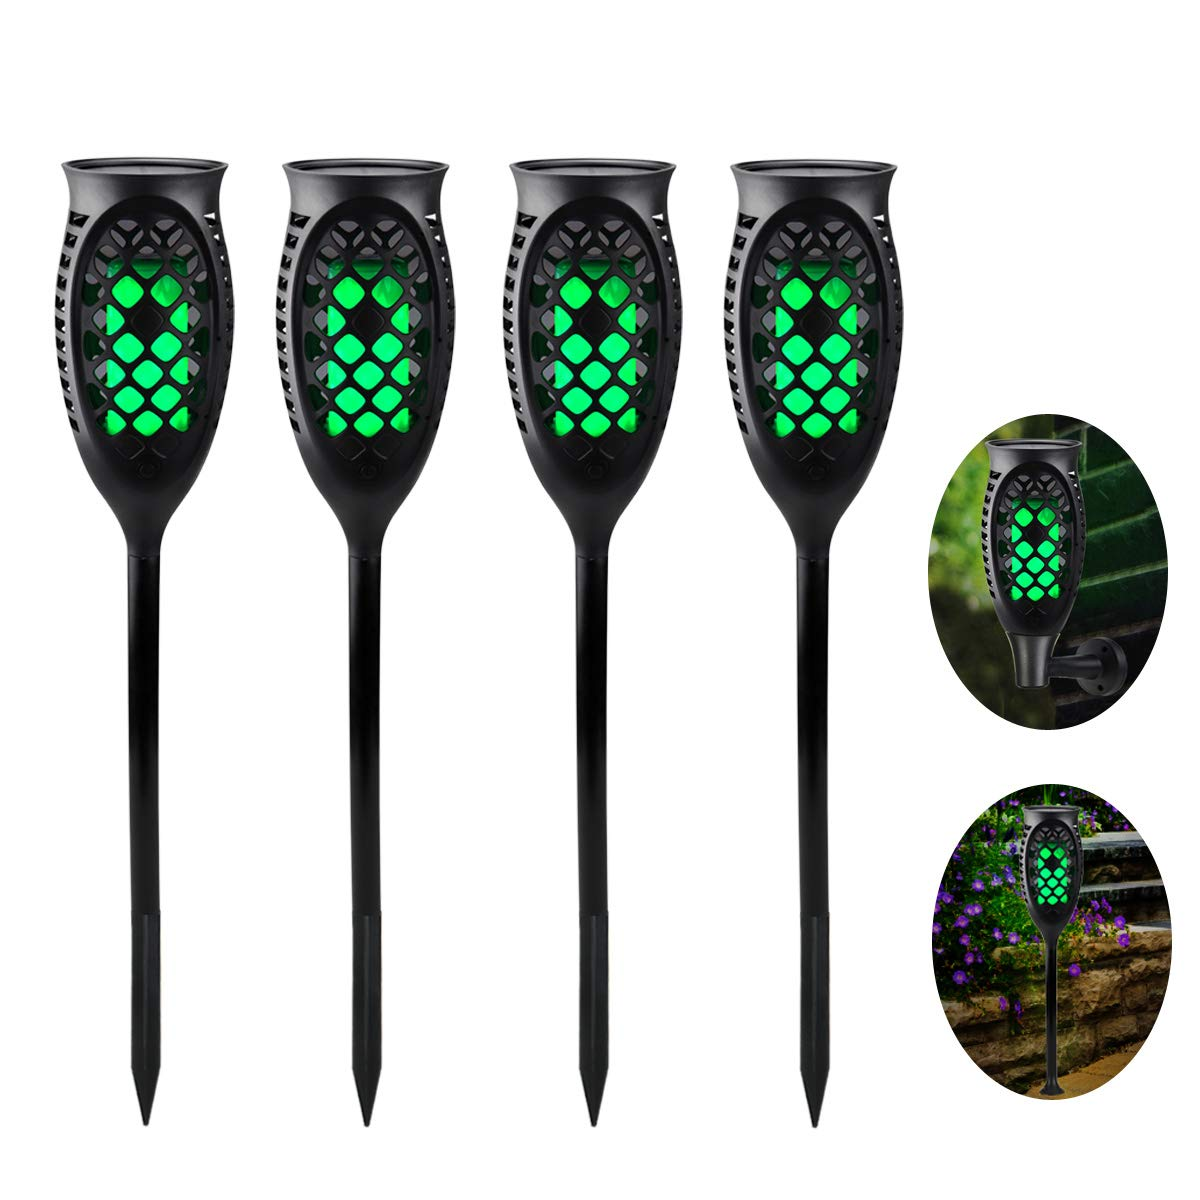 Juhefa Solar Lights Outdoor, Solar Torch Light Green Flickering Flame 99 LED Waterproof Garden Lighting Pathway Patio Landscape Decoration, 3 Modes & 3 Installation Ways, Dusk to Dawn Auto On/Off (4)